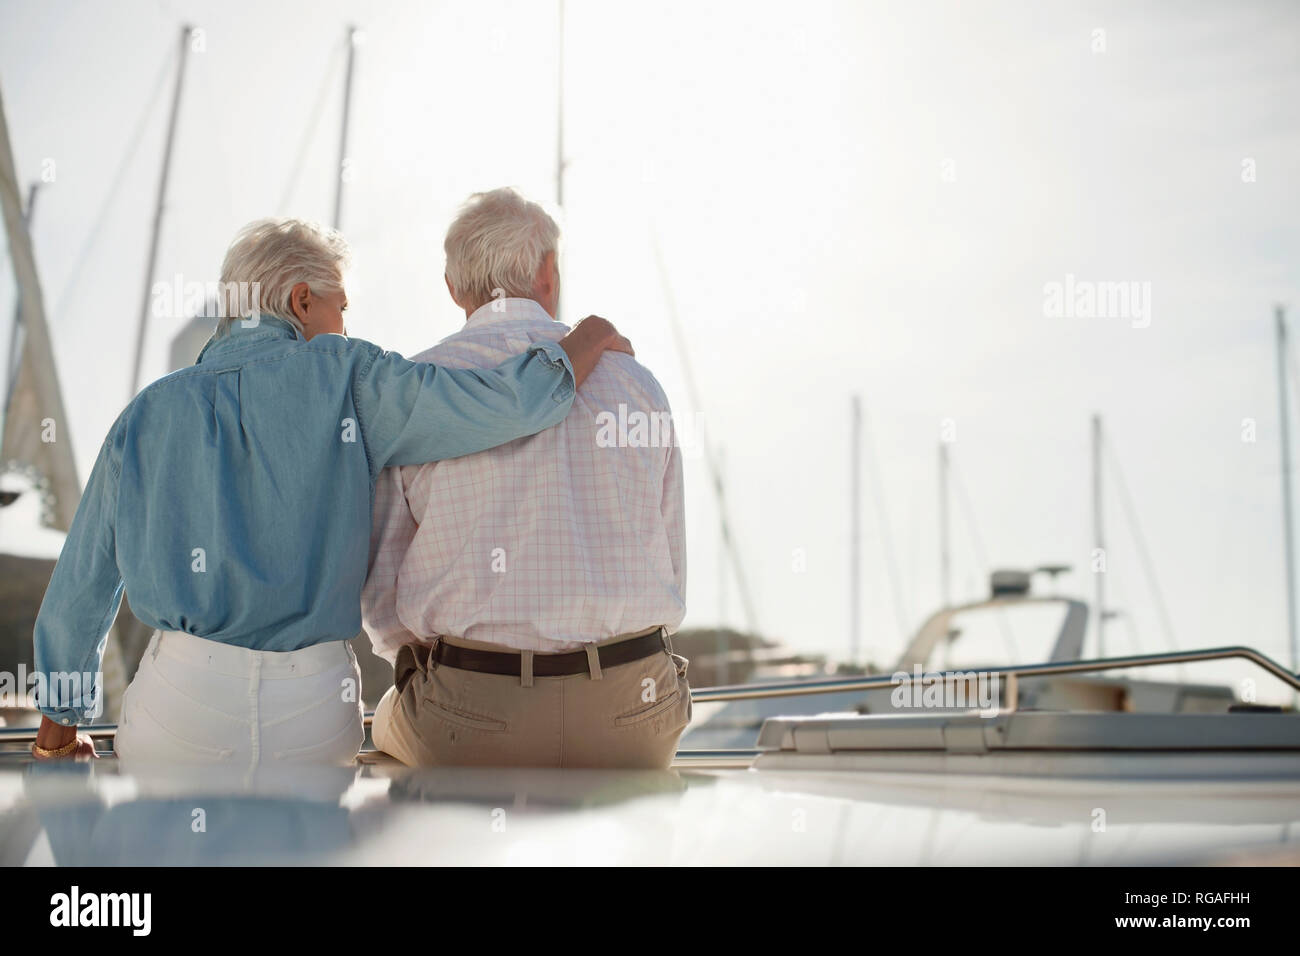 Senior woman puts her hand around her husband's shoulders as they sit on a boat looking out over the marina. - Stock Image